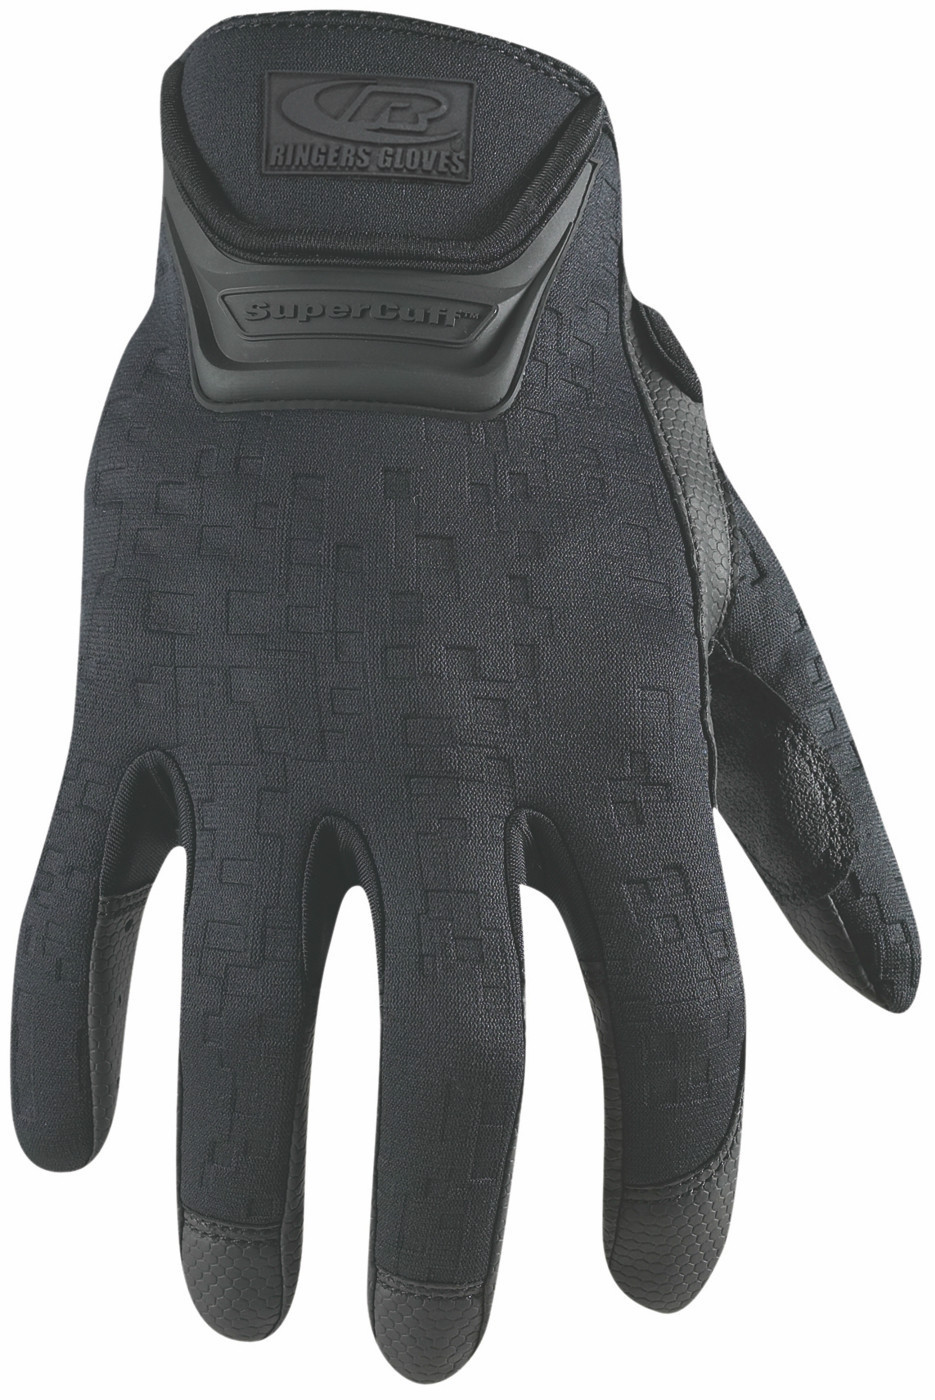 Ringers 517 SuperCuff LE Duty Plus Gloves